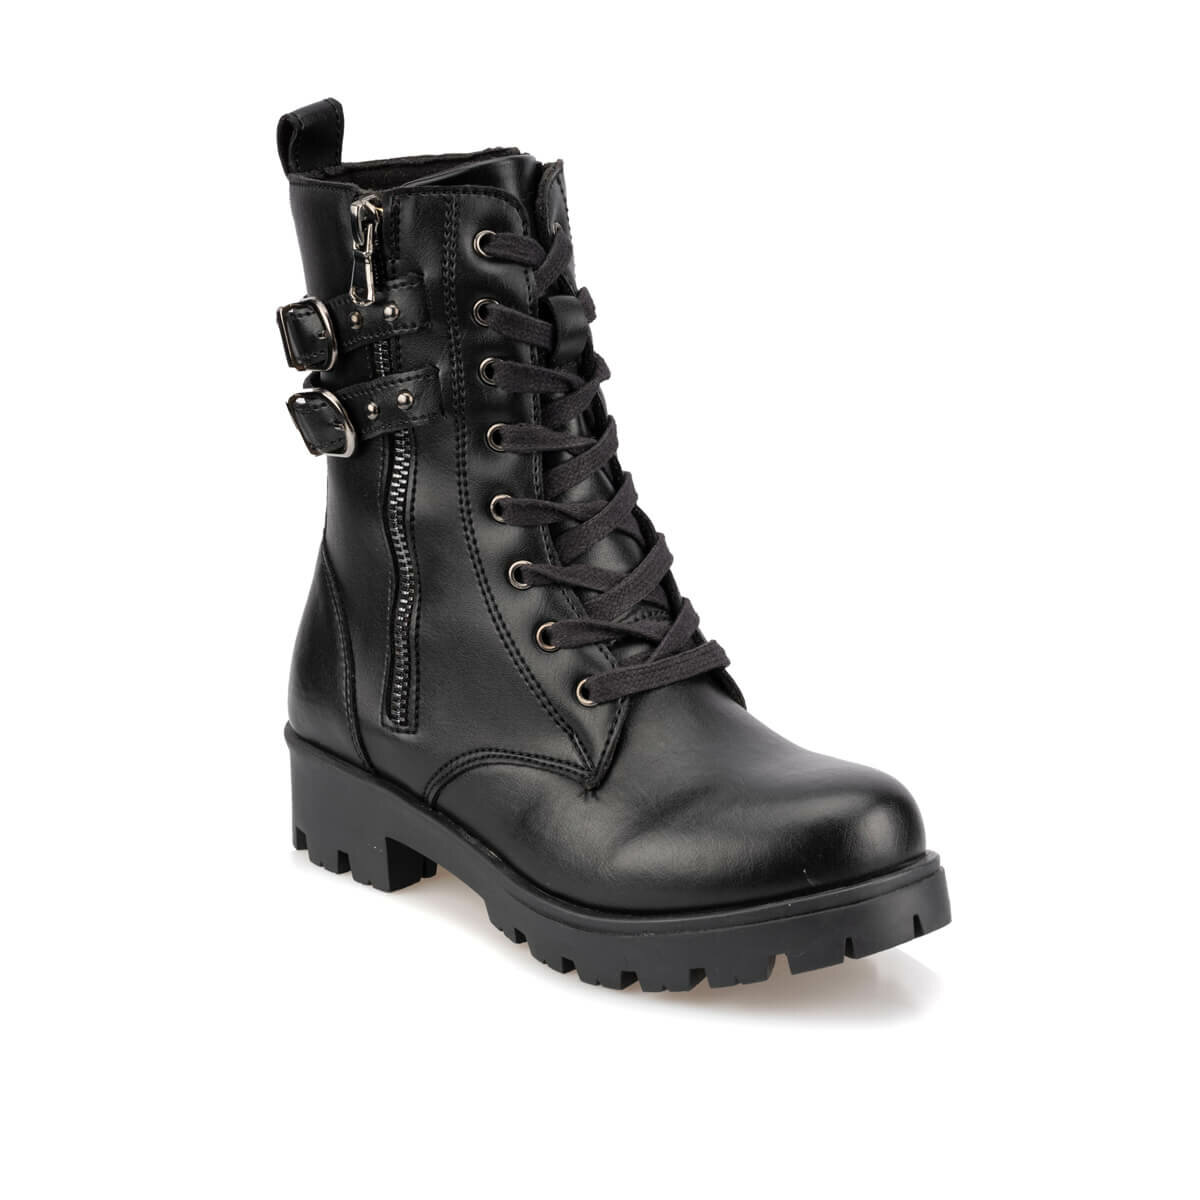 FLO 92.509677.F Black Female Child Boots Polaris